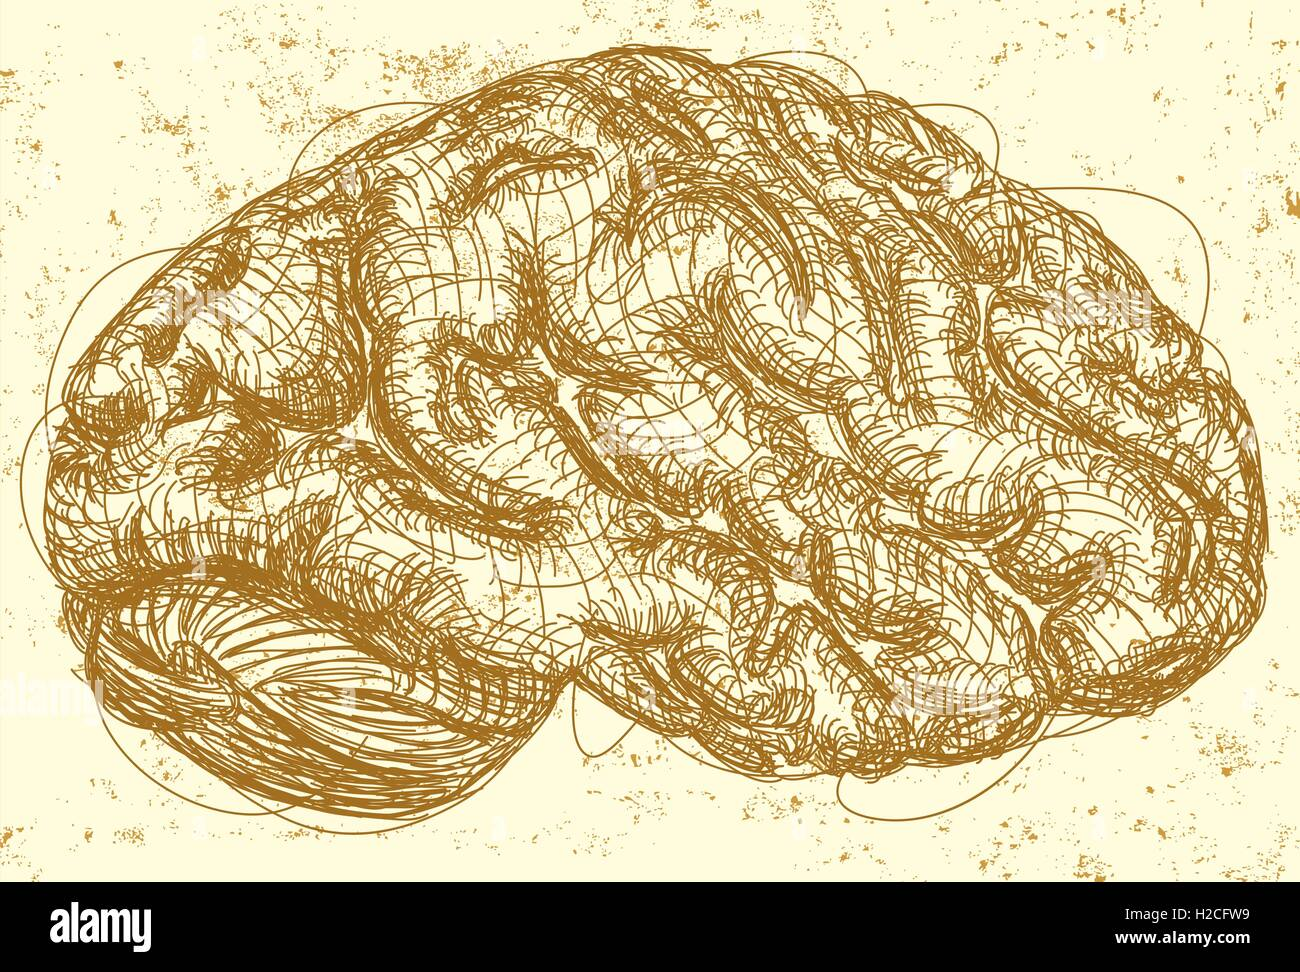 Brain  A sketch of the side view of a brain over an abstract background. - Stock Image